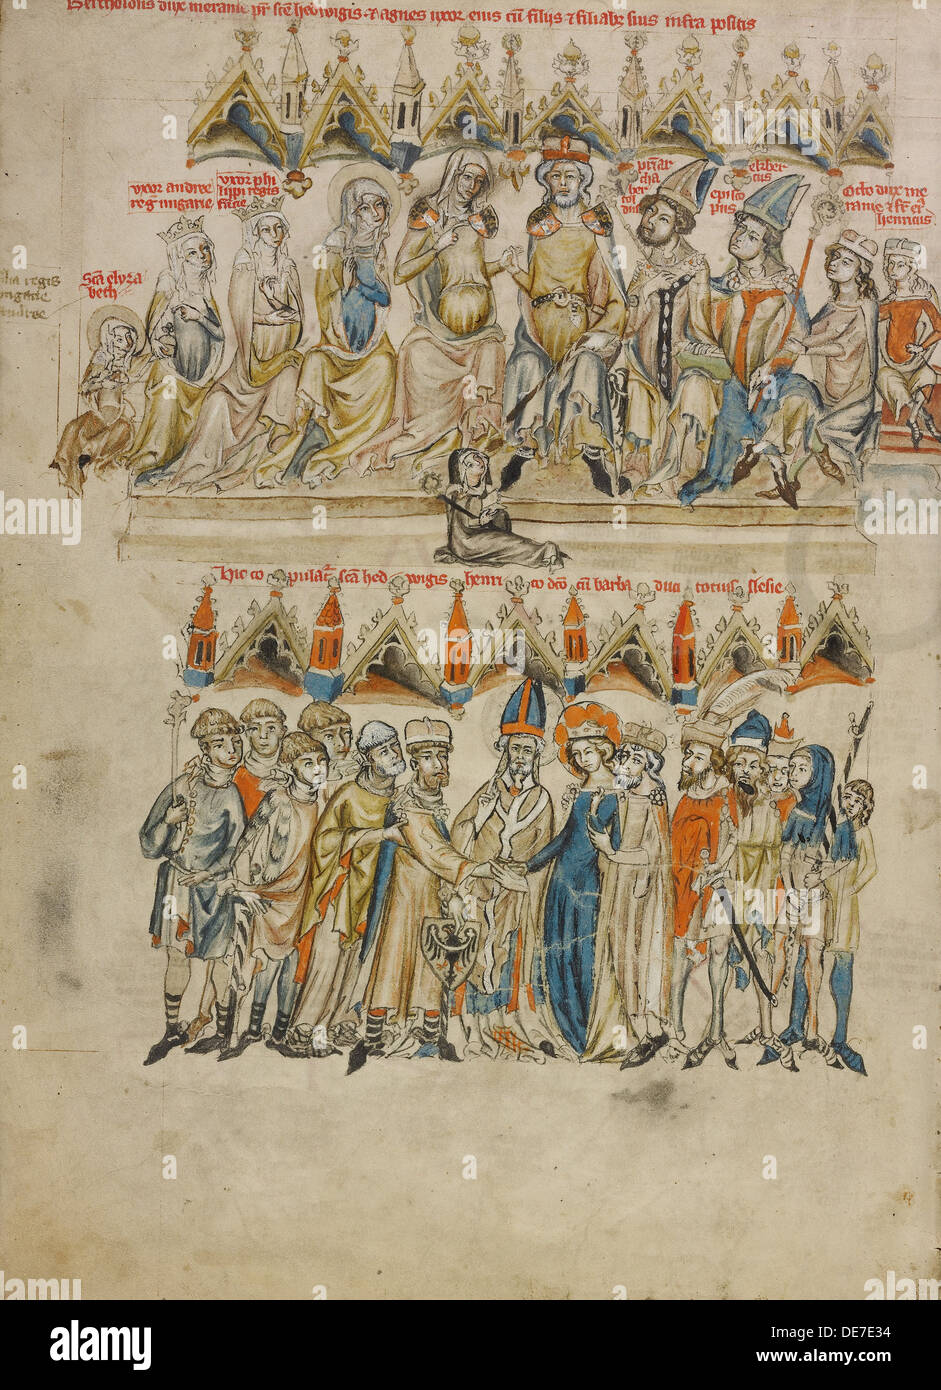 Family of Berthold IV of Merania. The Marriage of Hedwig and Heinrich, 1353. Artist: Court workshop of Duke Ludwig I of Liegnitz - Stock Image